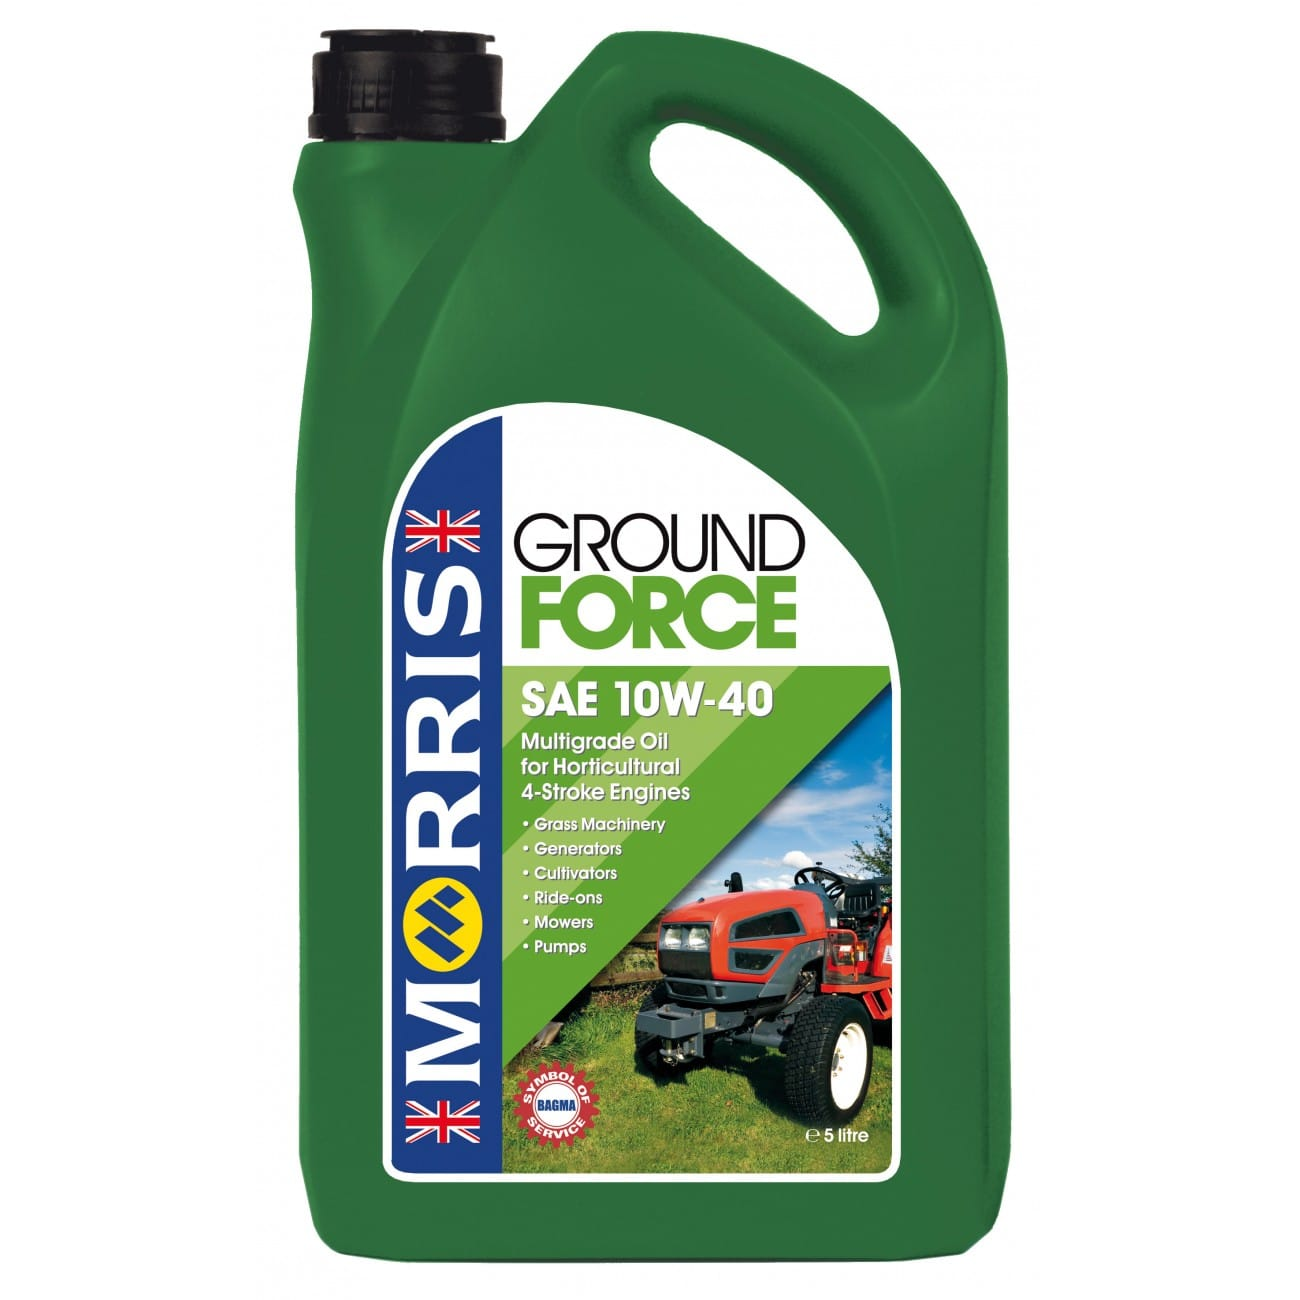 Ground Force SAE 10W-40 Engine Oil